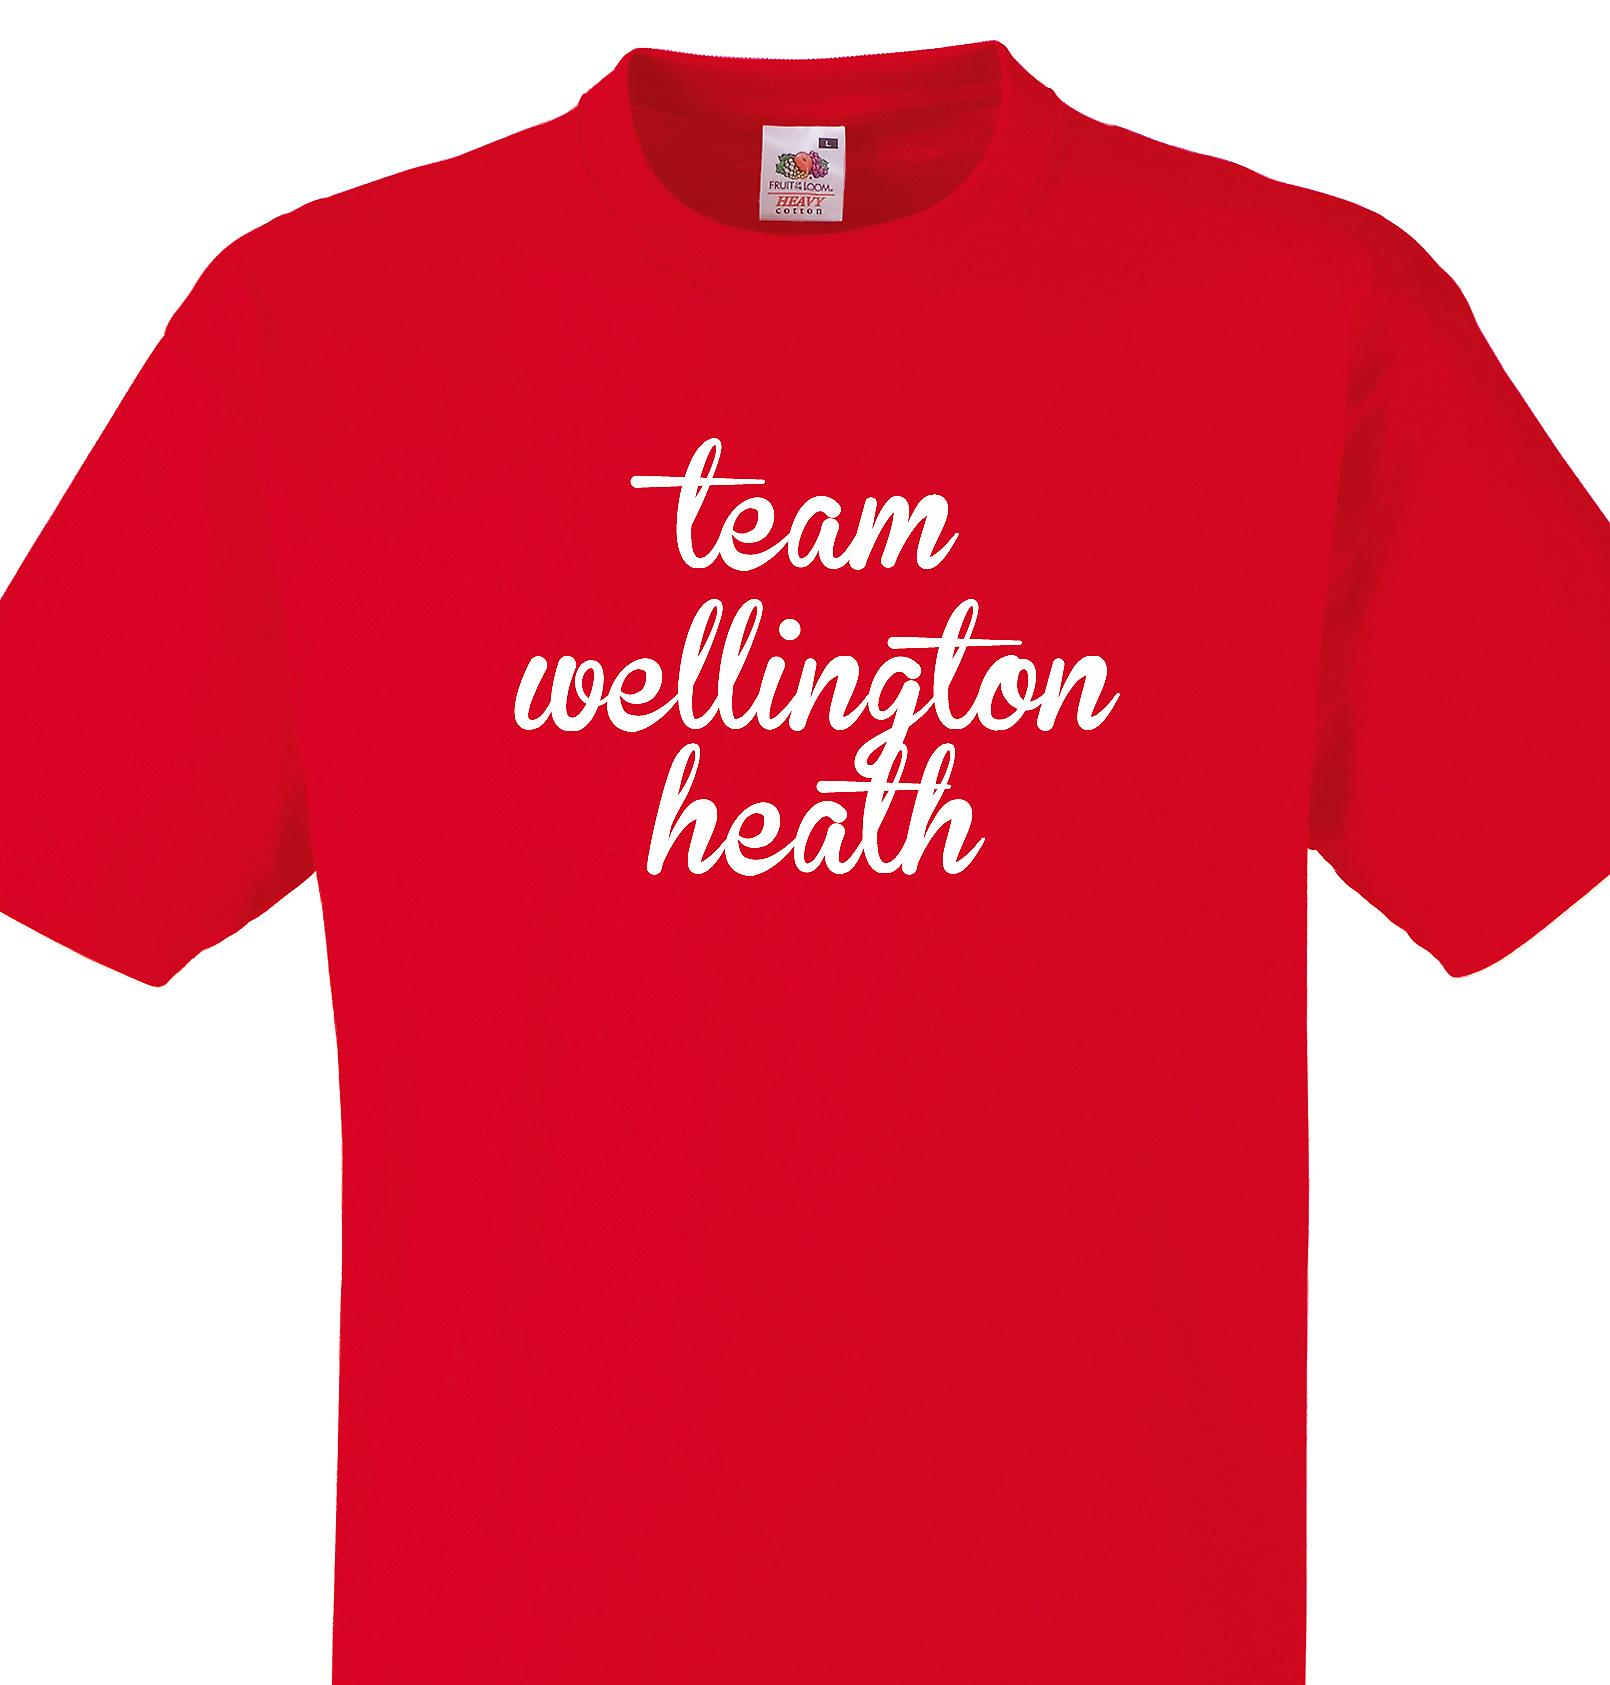 Team Wellington heath Red T shirt